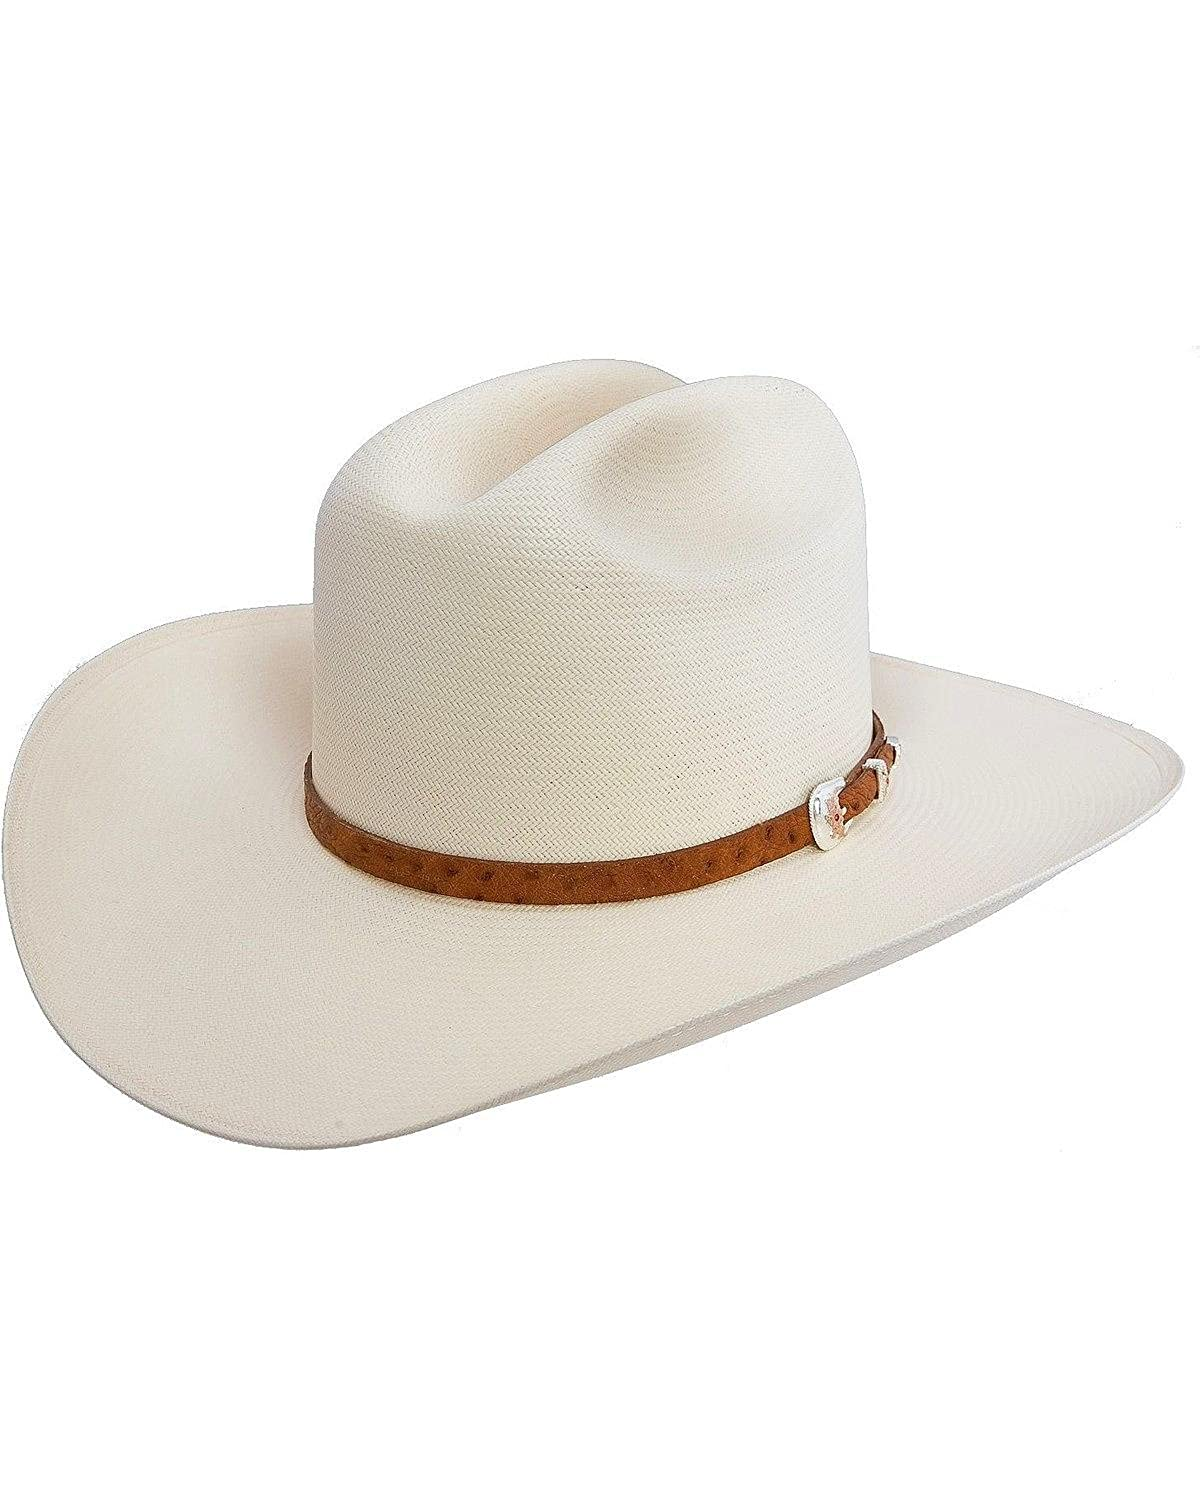 b9c0e999e4f Stetson Men s El Noble 500X Straw Cowboy Hat - Sselnbm2840 at Amazon Men s  Clothing store